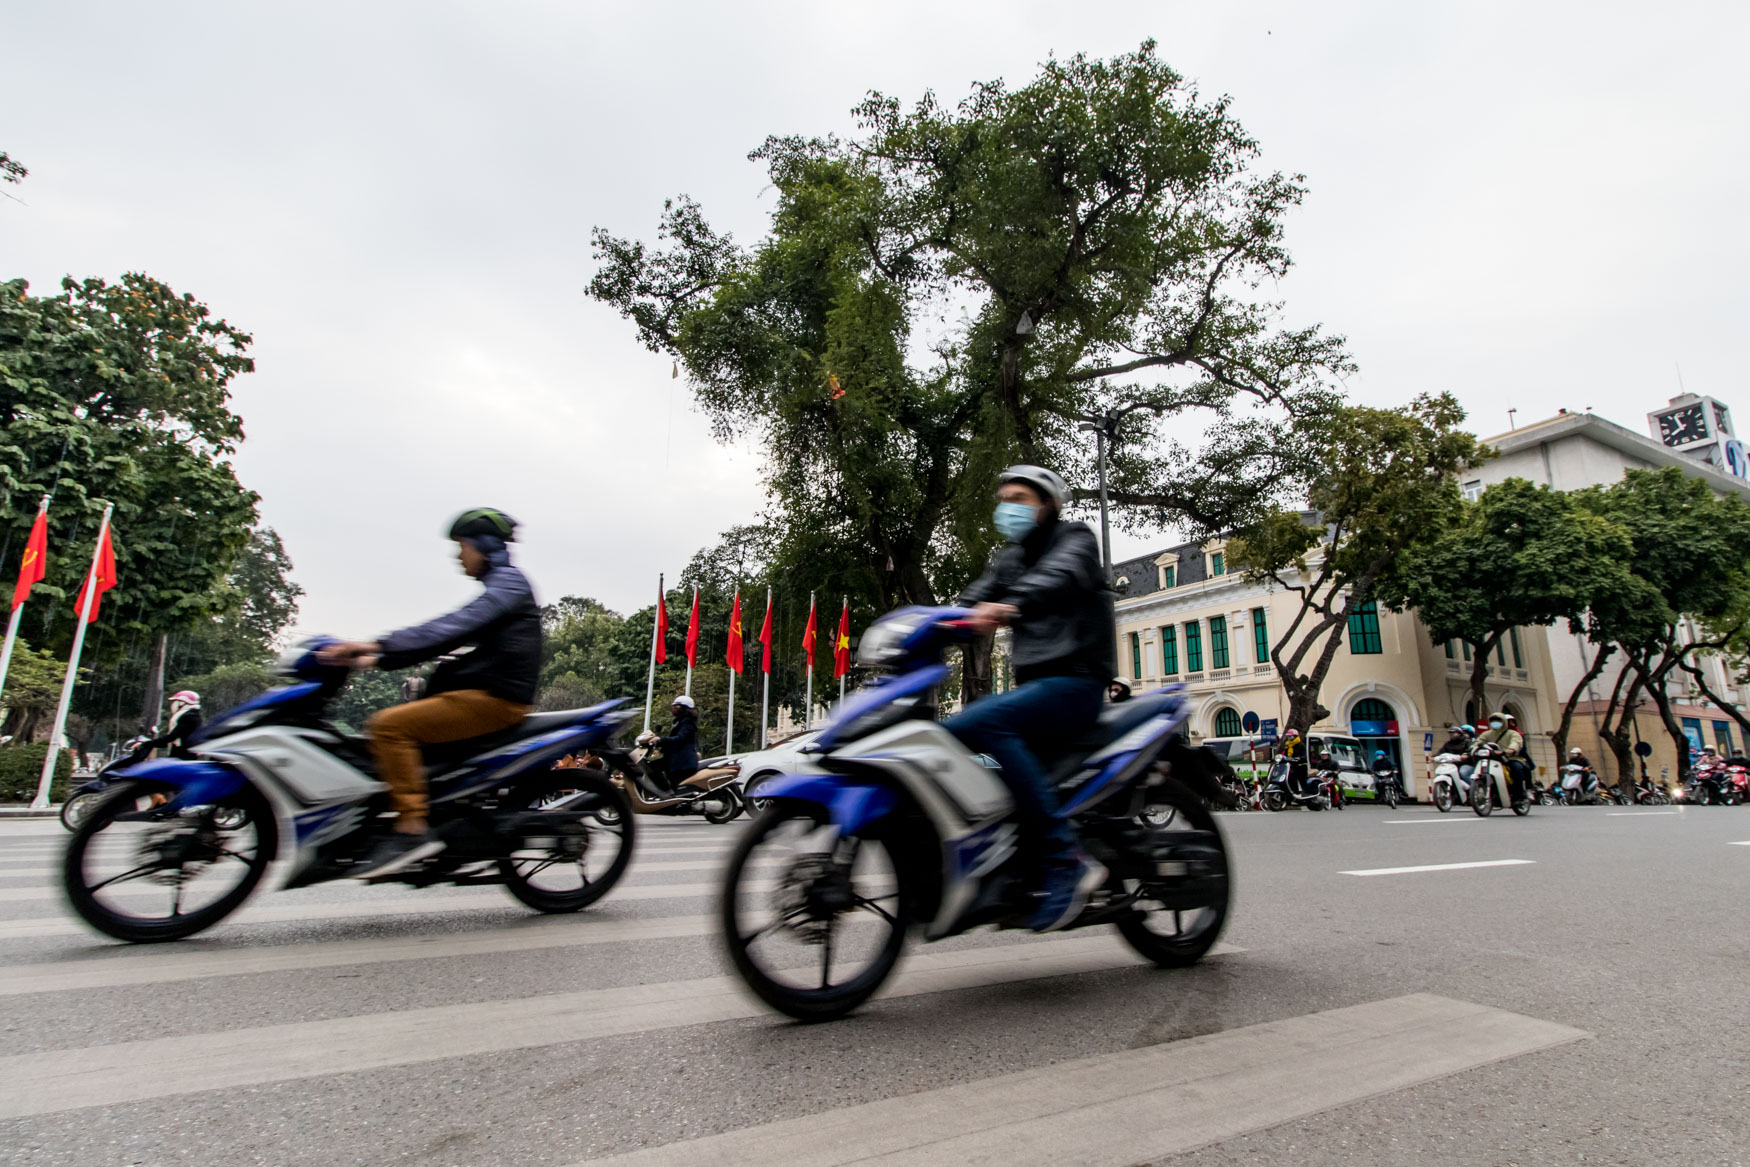 Scooter Traffic in Hanoi